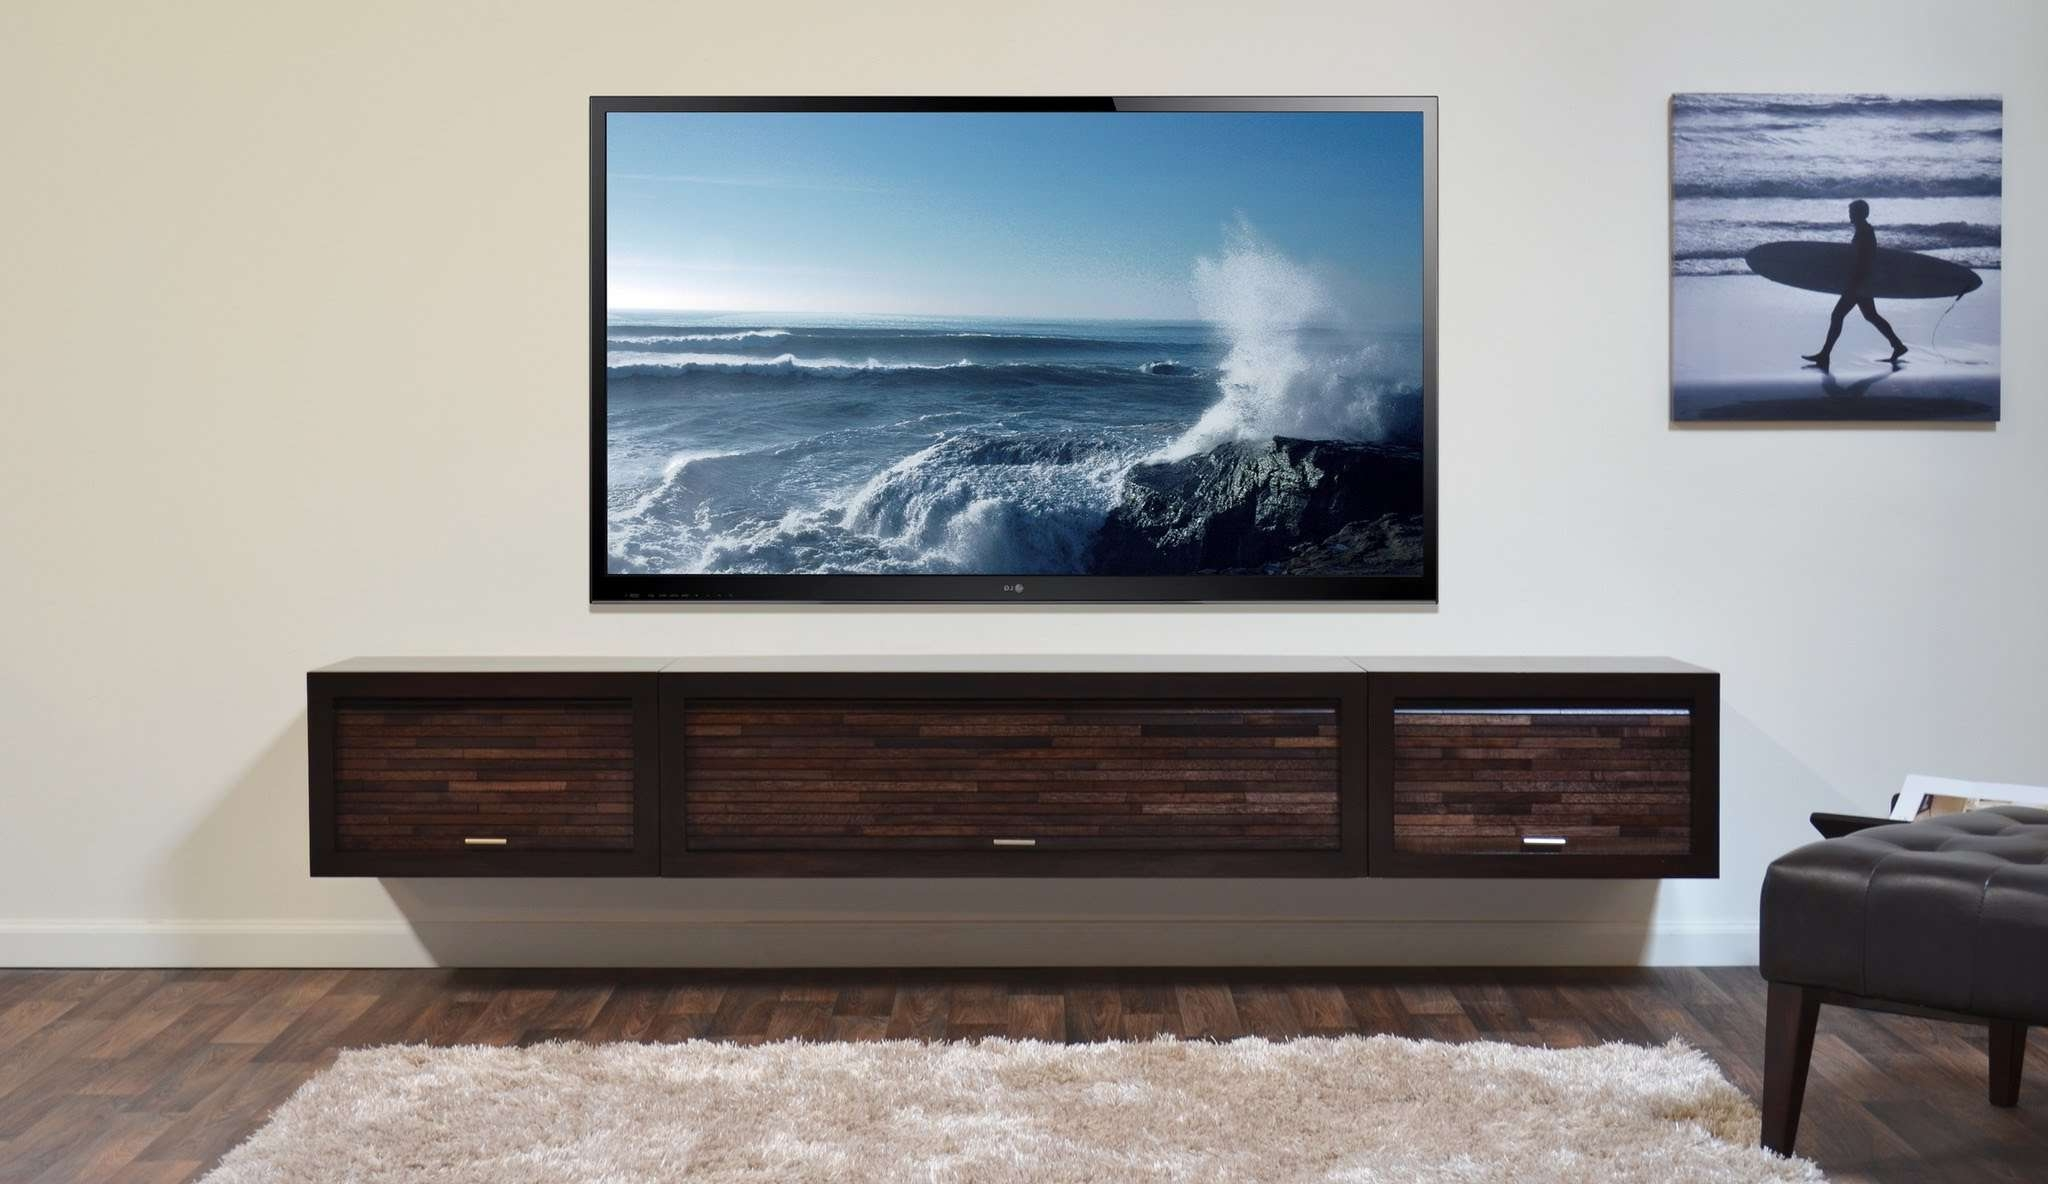 Diy Modern Tv Stand, Tv Stand Project On Pinterest – Youtube Regarding Modern Tv Stands With Mount (View 4 of 15)